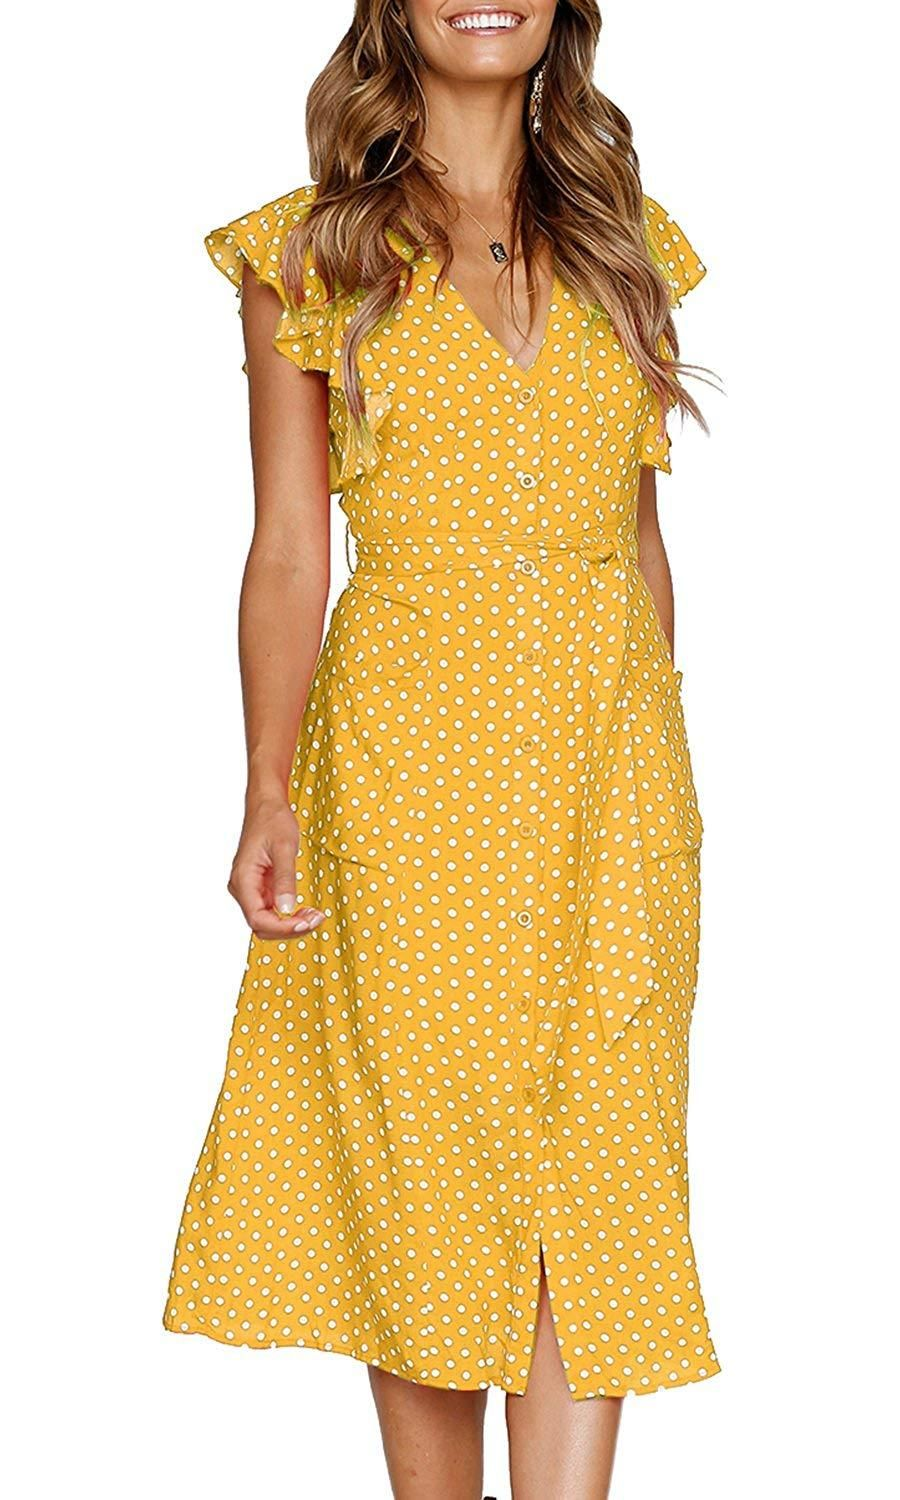 MITILLY Women s Summer Boho Polka Dot Sleeveless V Neck Swing Midi Dress  Pockets 5bab78189